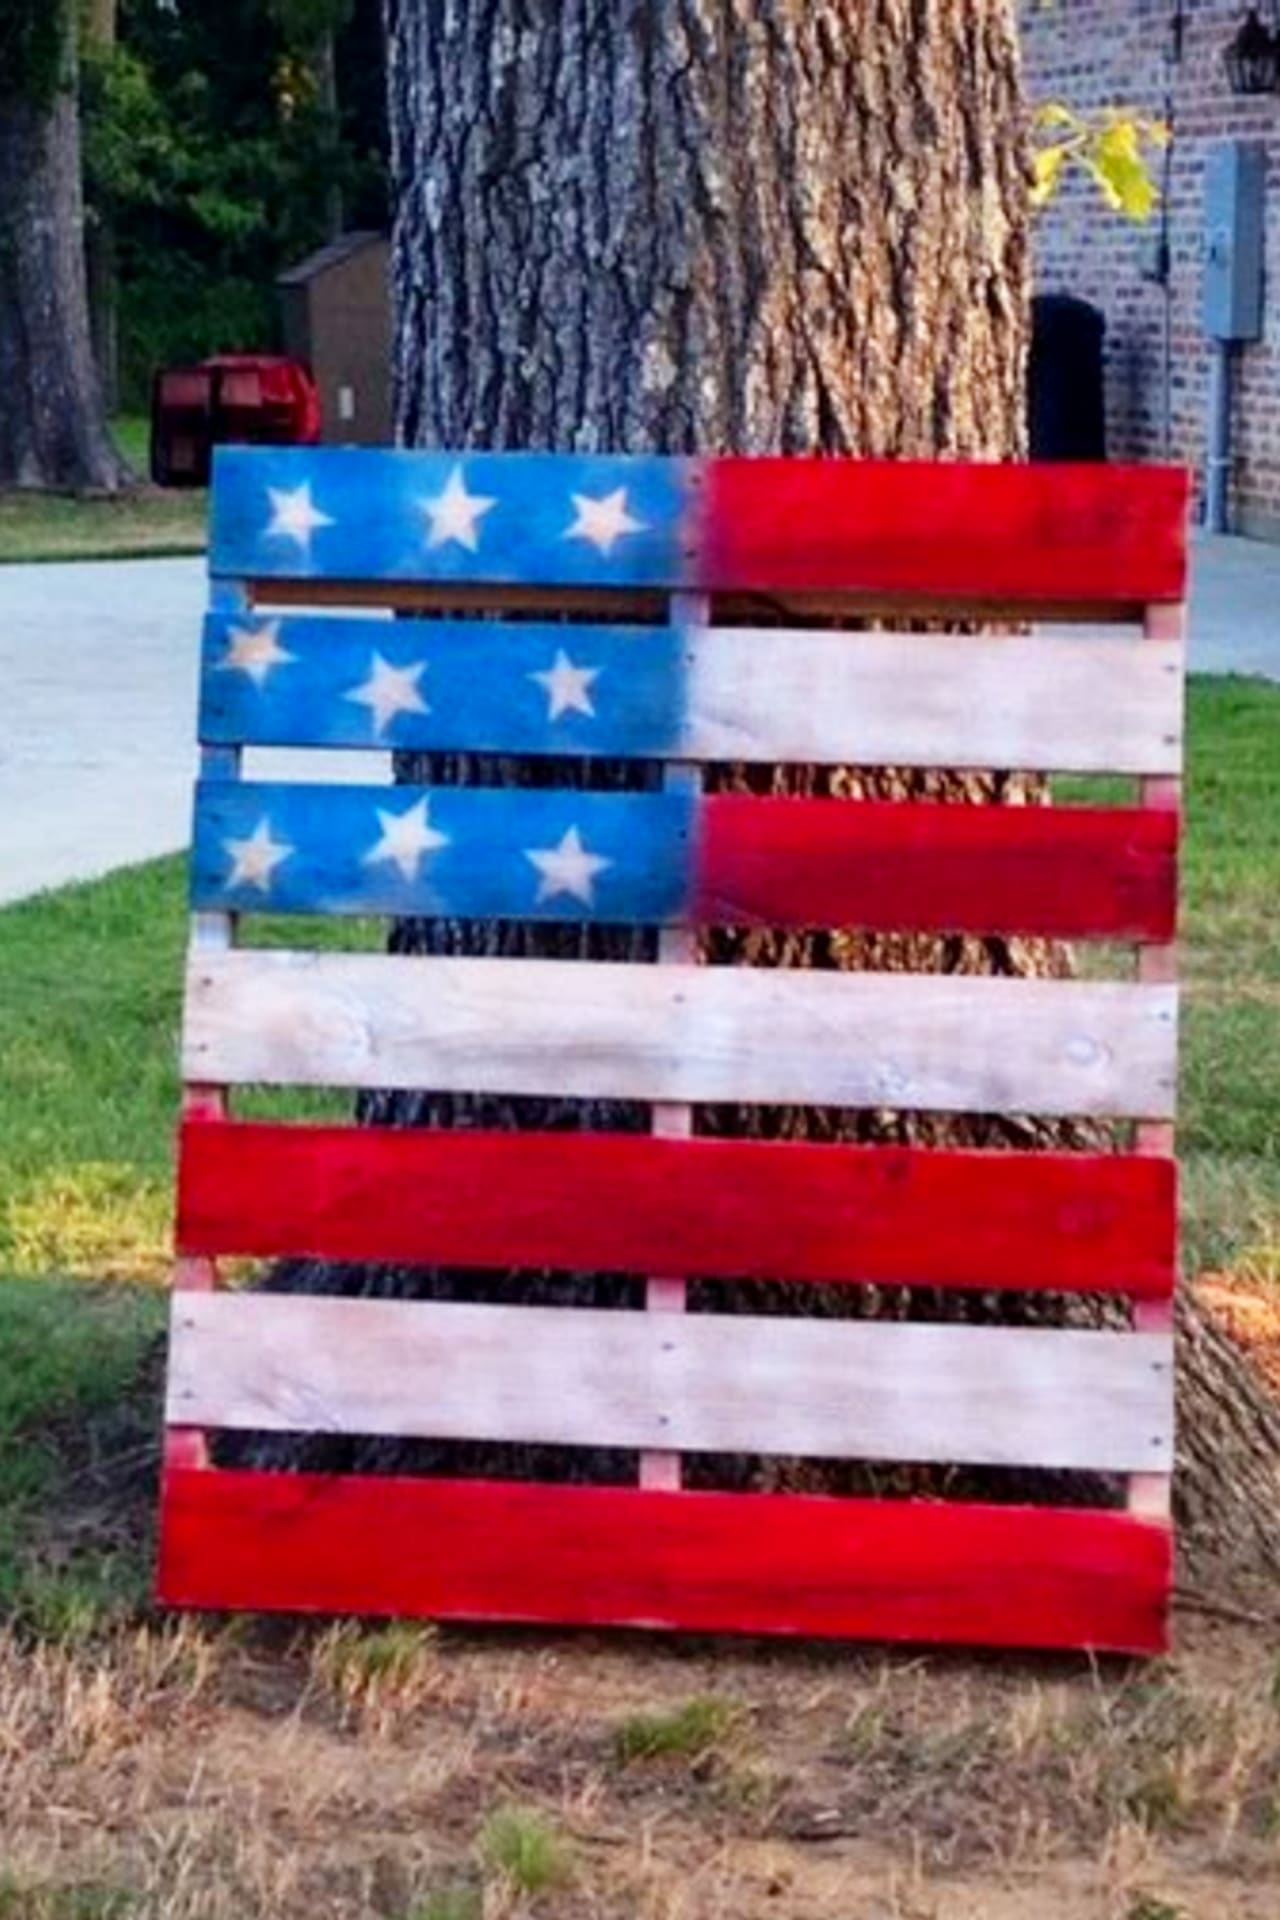 4th of July party ideas - yard decorations for a 4th of July party